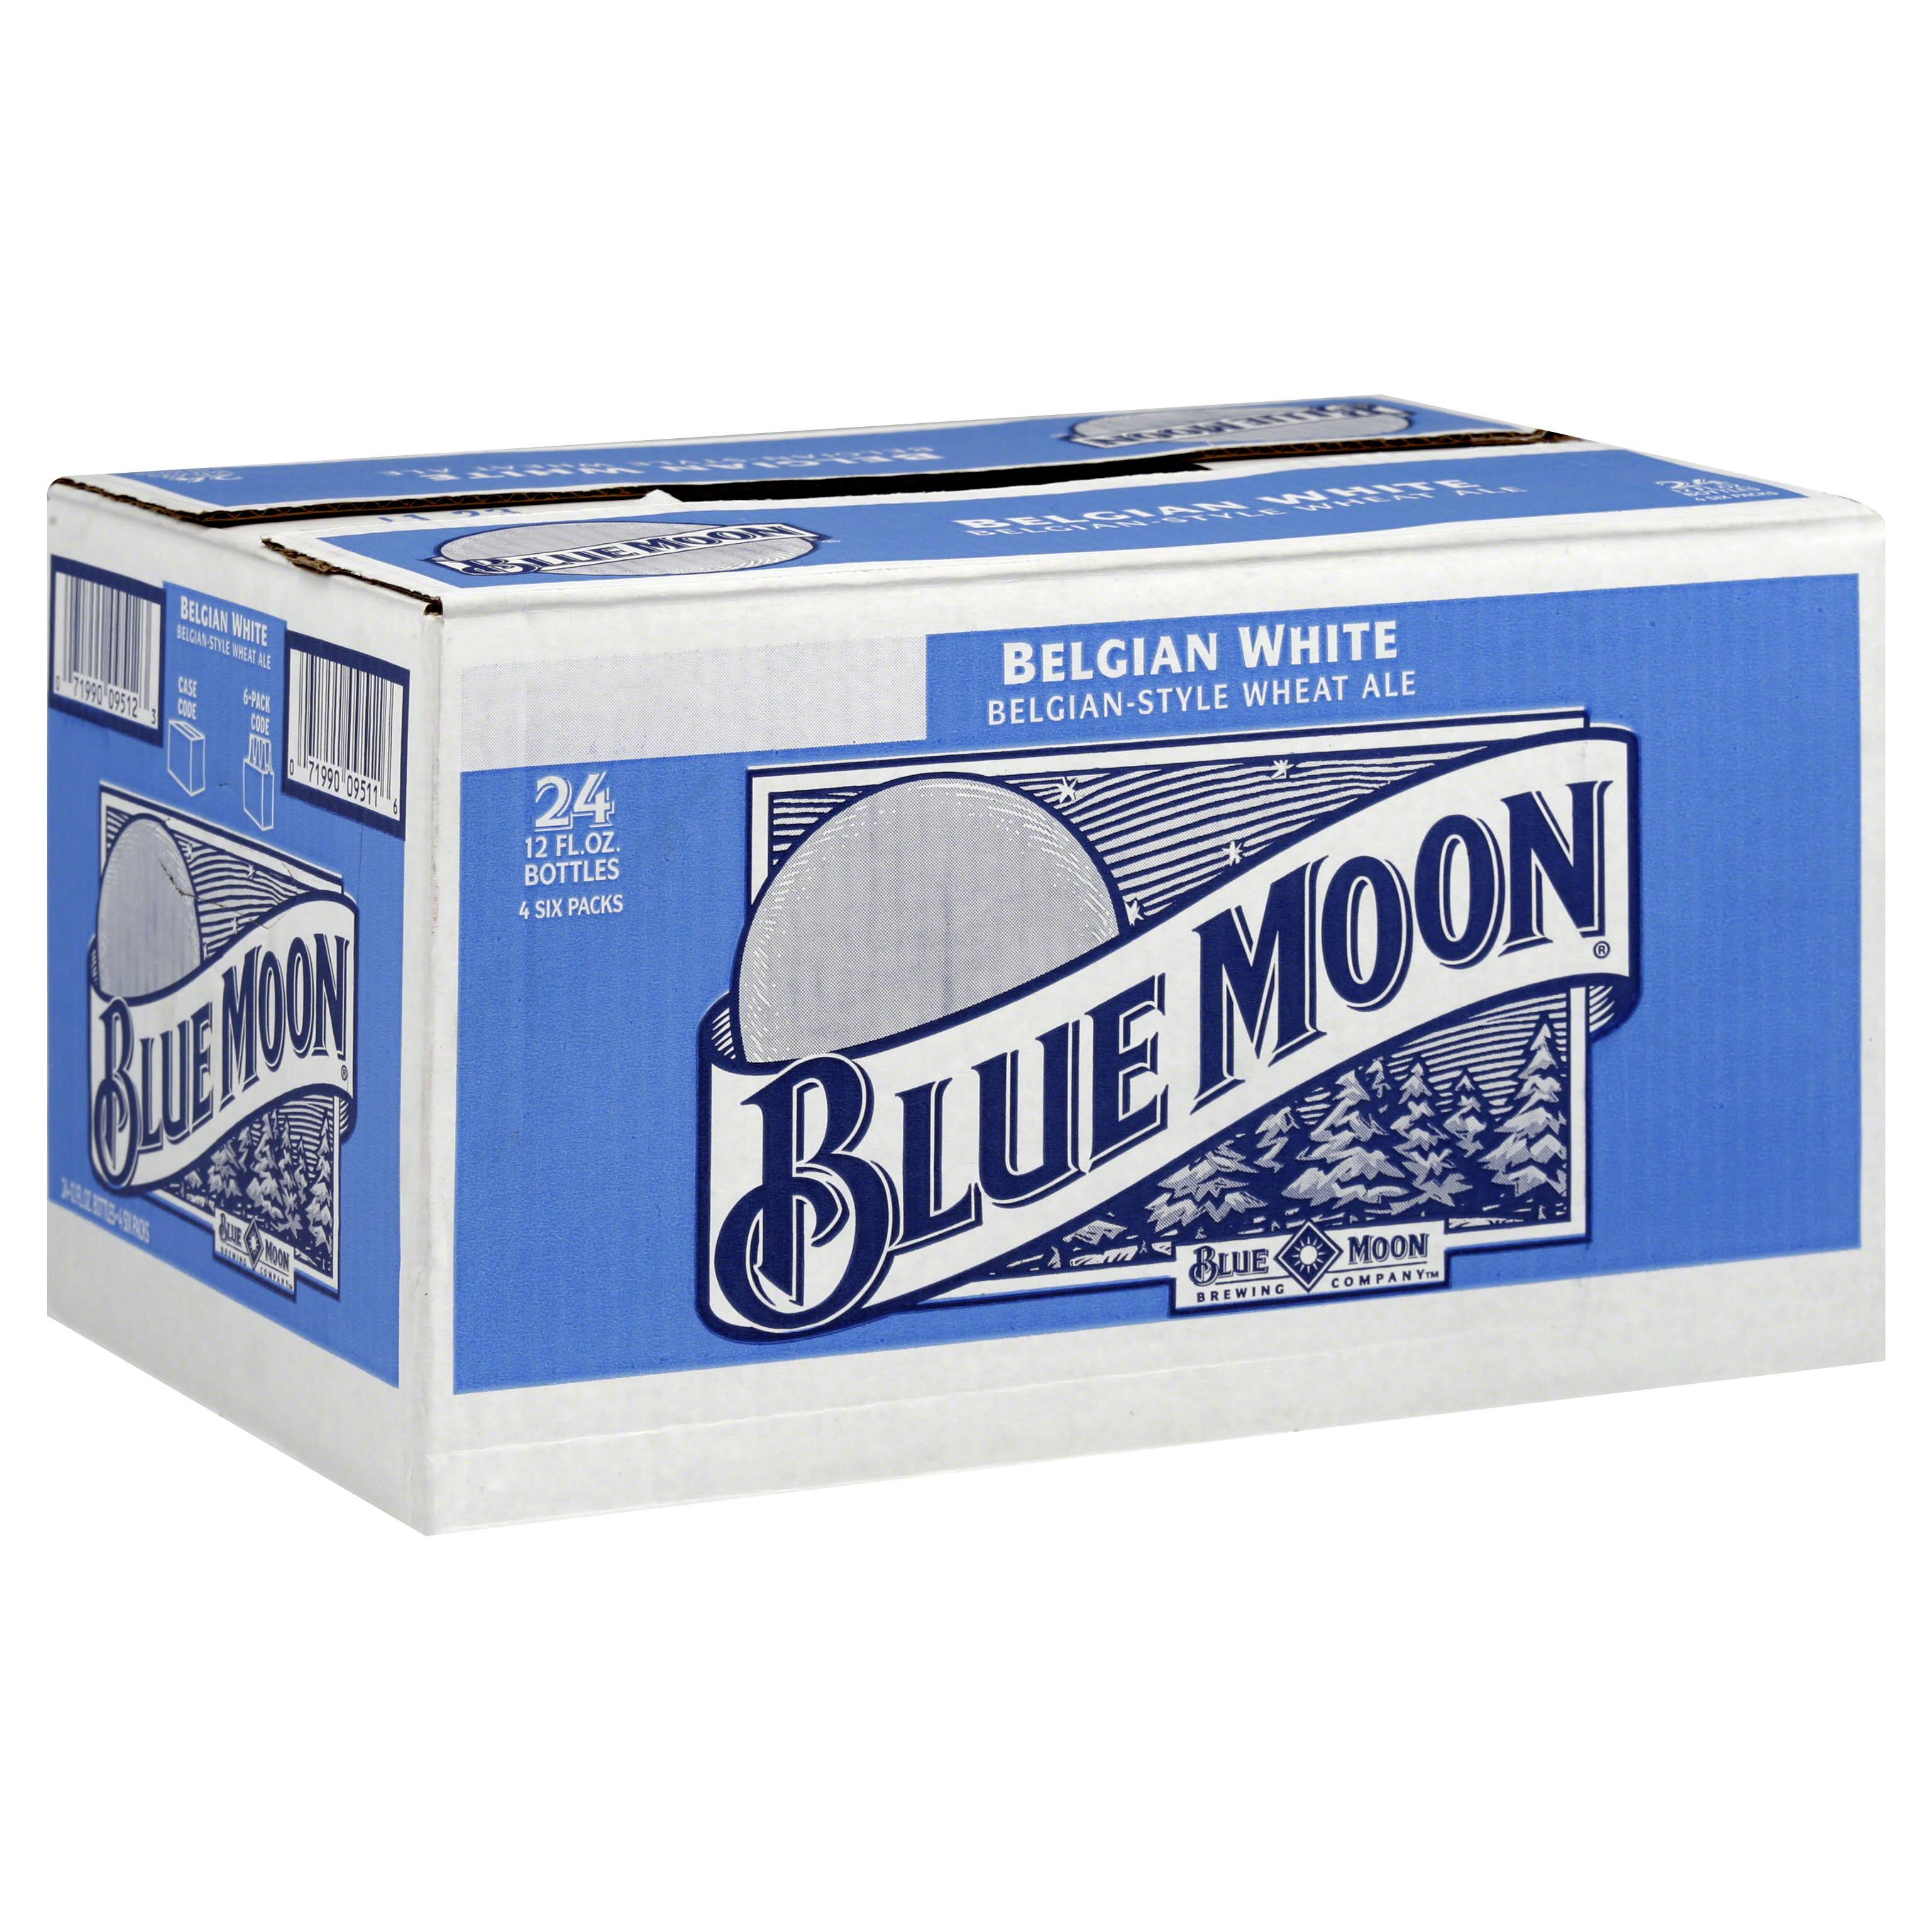 Blue Moon Ale, Wheat, Belgian White - 24 pack, 12 fl oz bottles